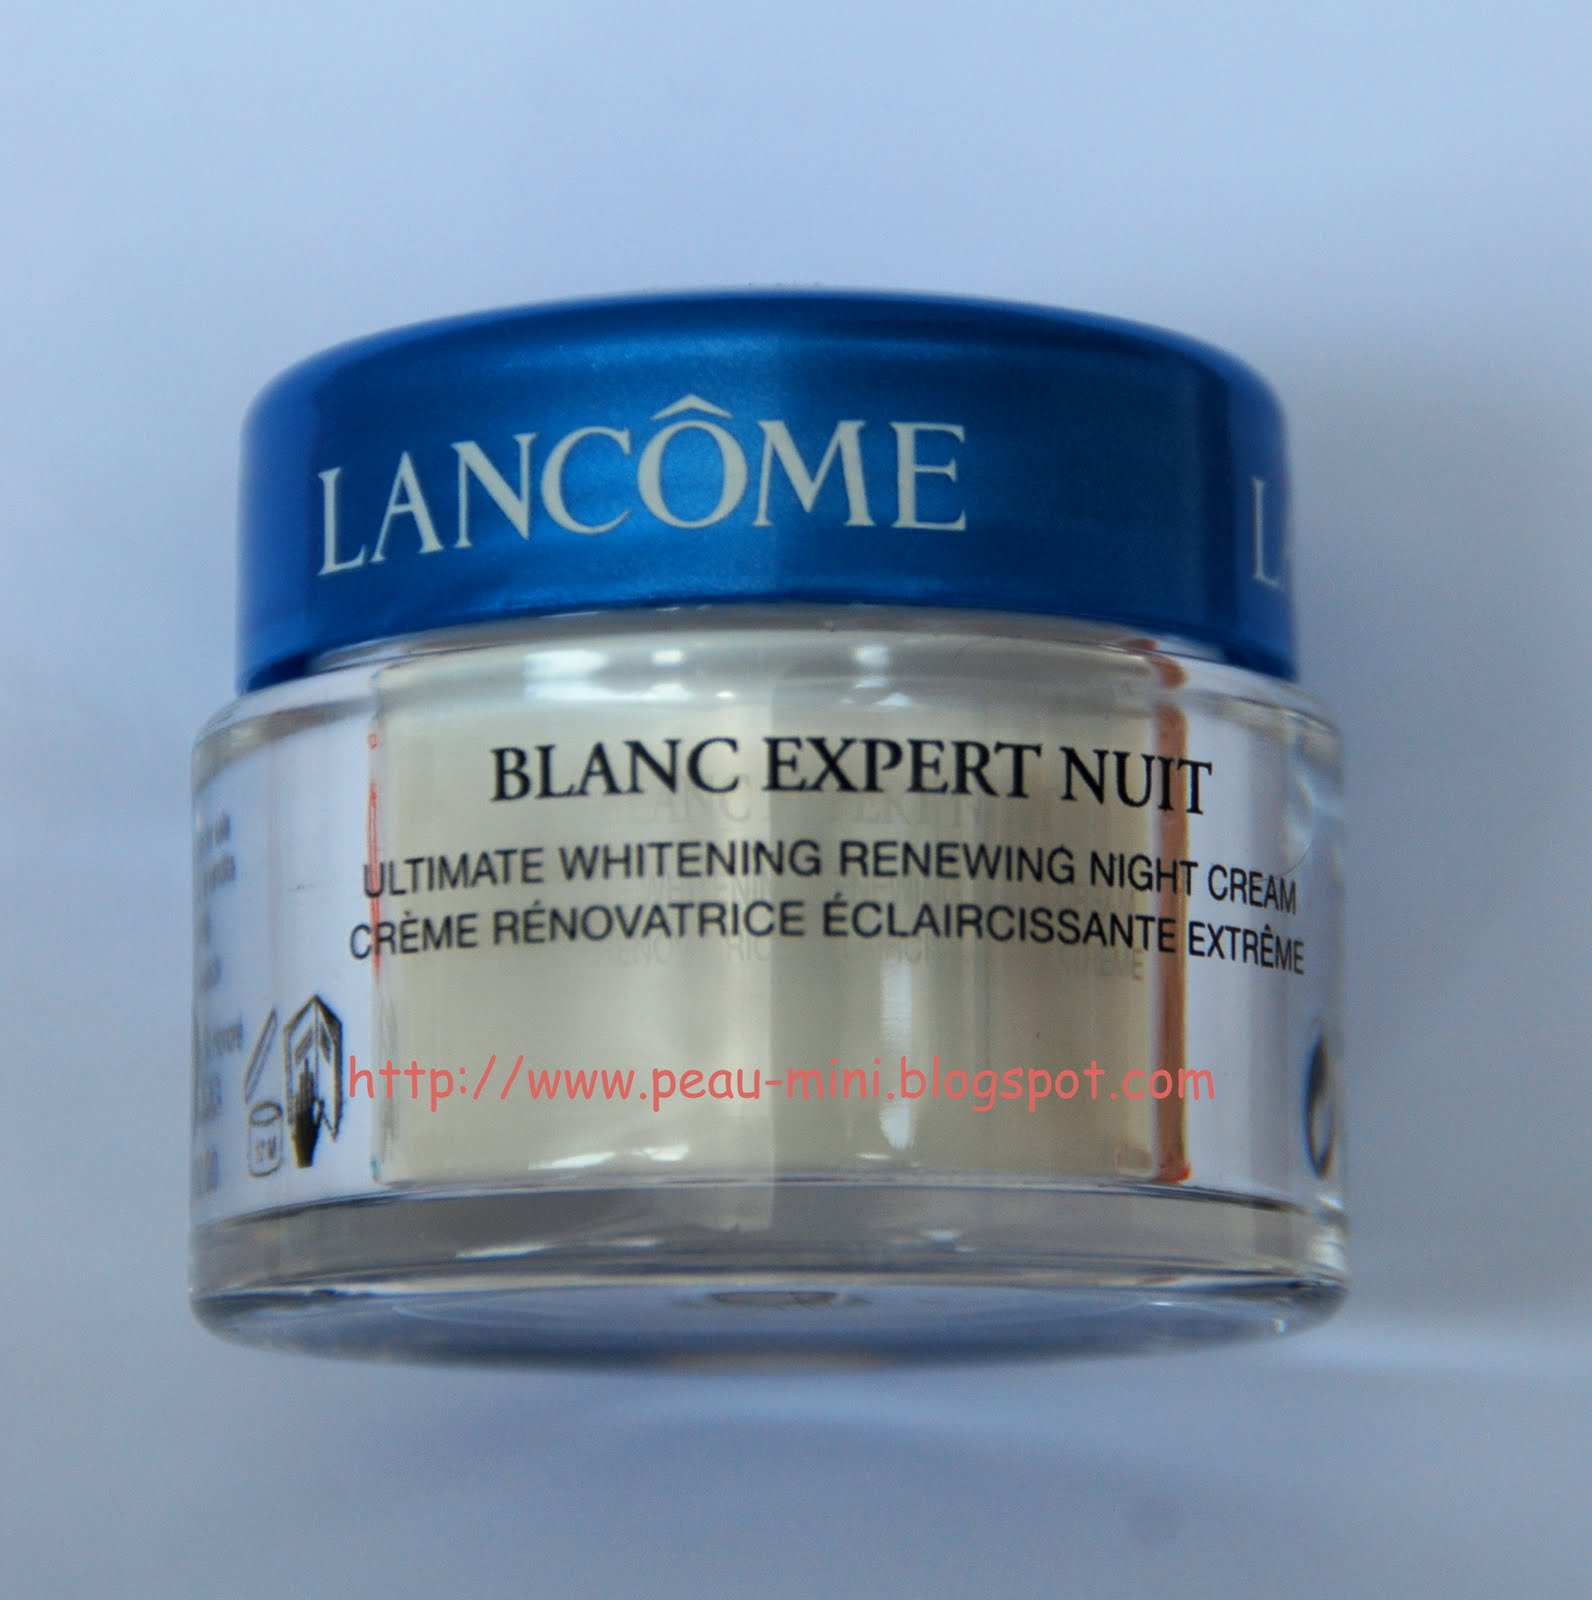 Peau Mini Skincare In Travel Size March 2010 Lancome Blanc Expert Ultimate Whitening Purifying Foam 30ml Nuit Renewing Night Cream